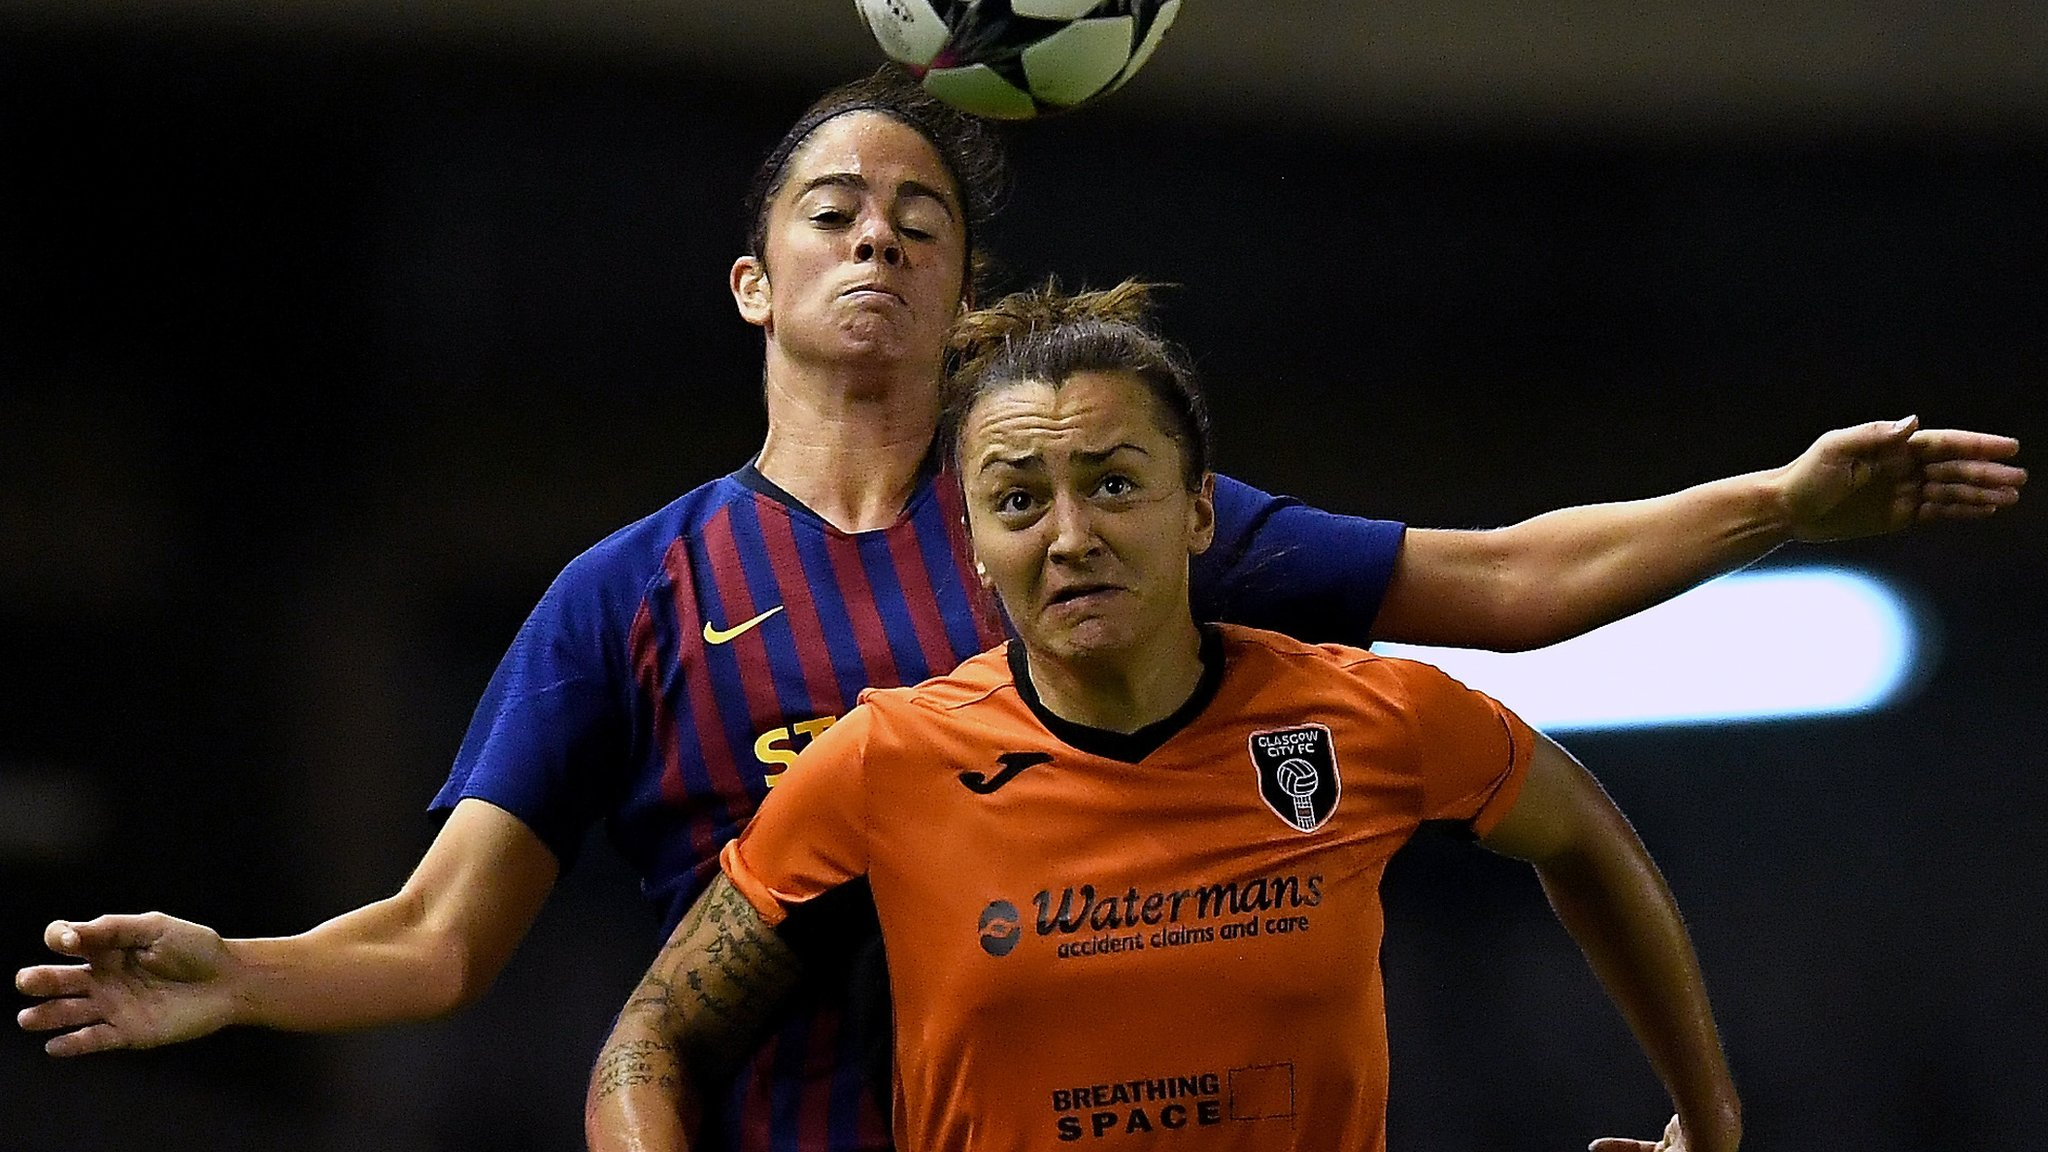 Glasgow City thrashed by Barcelona - highlights & report